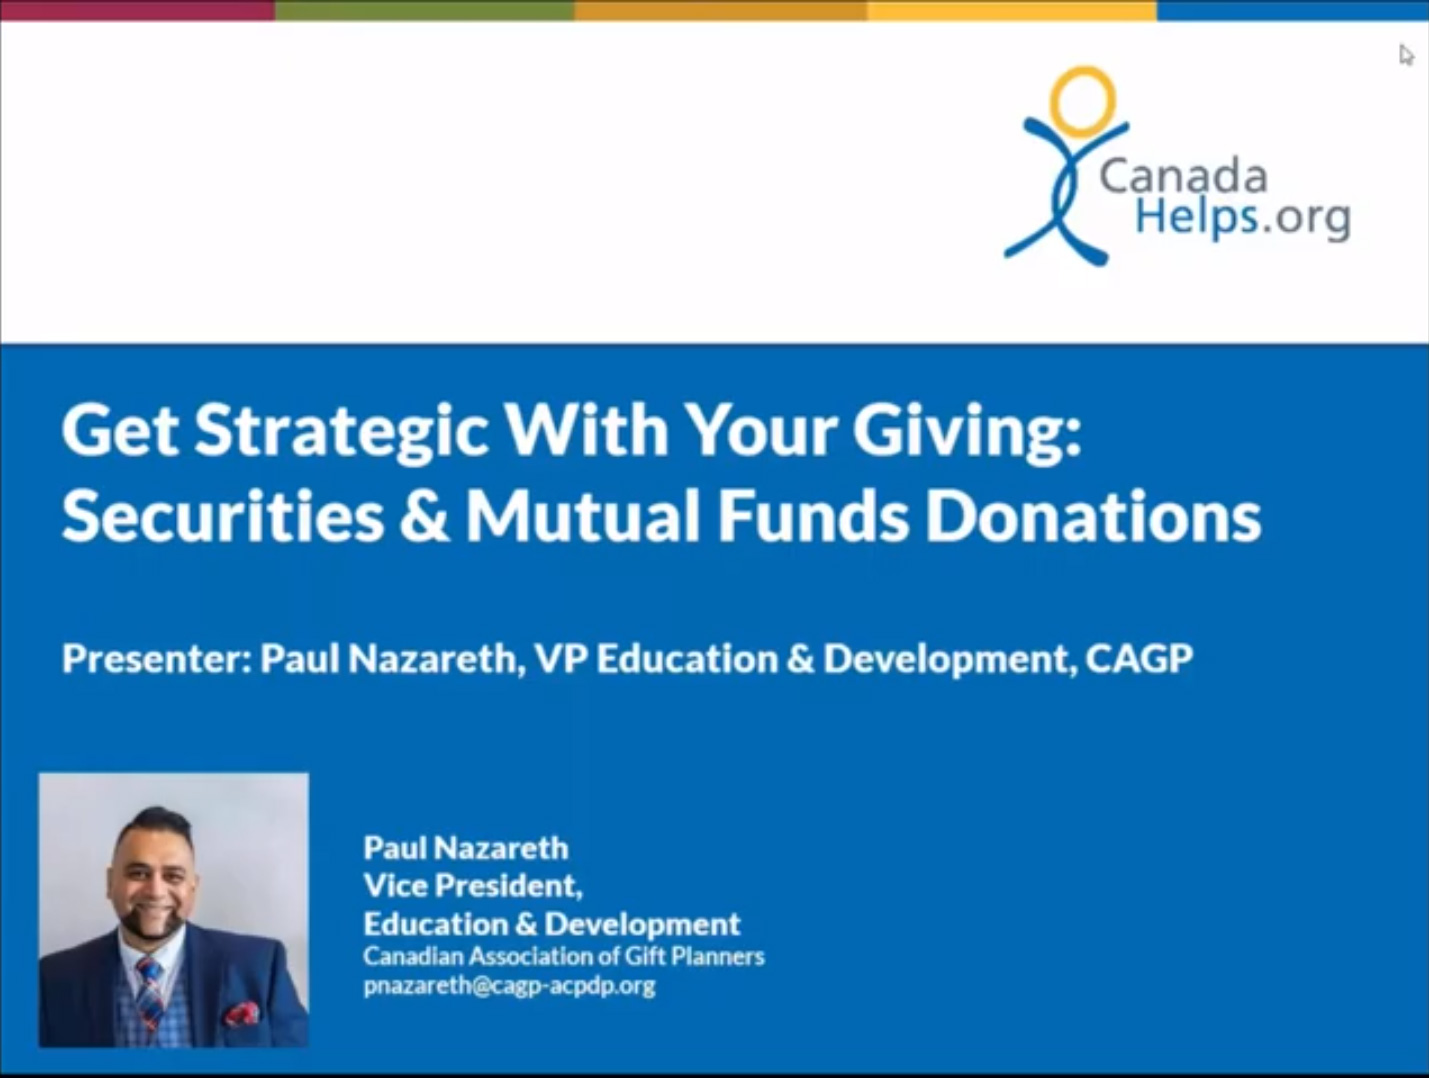 Get Strategic with Your Giving